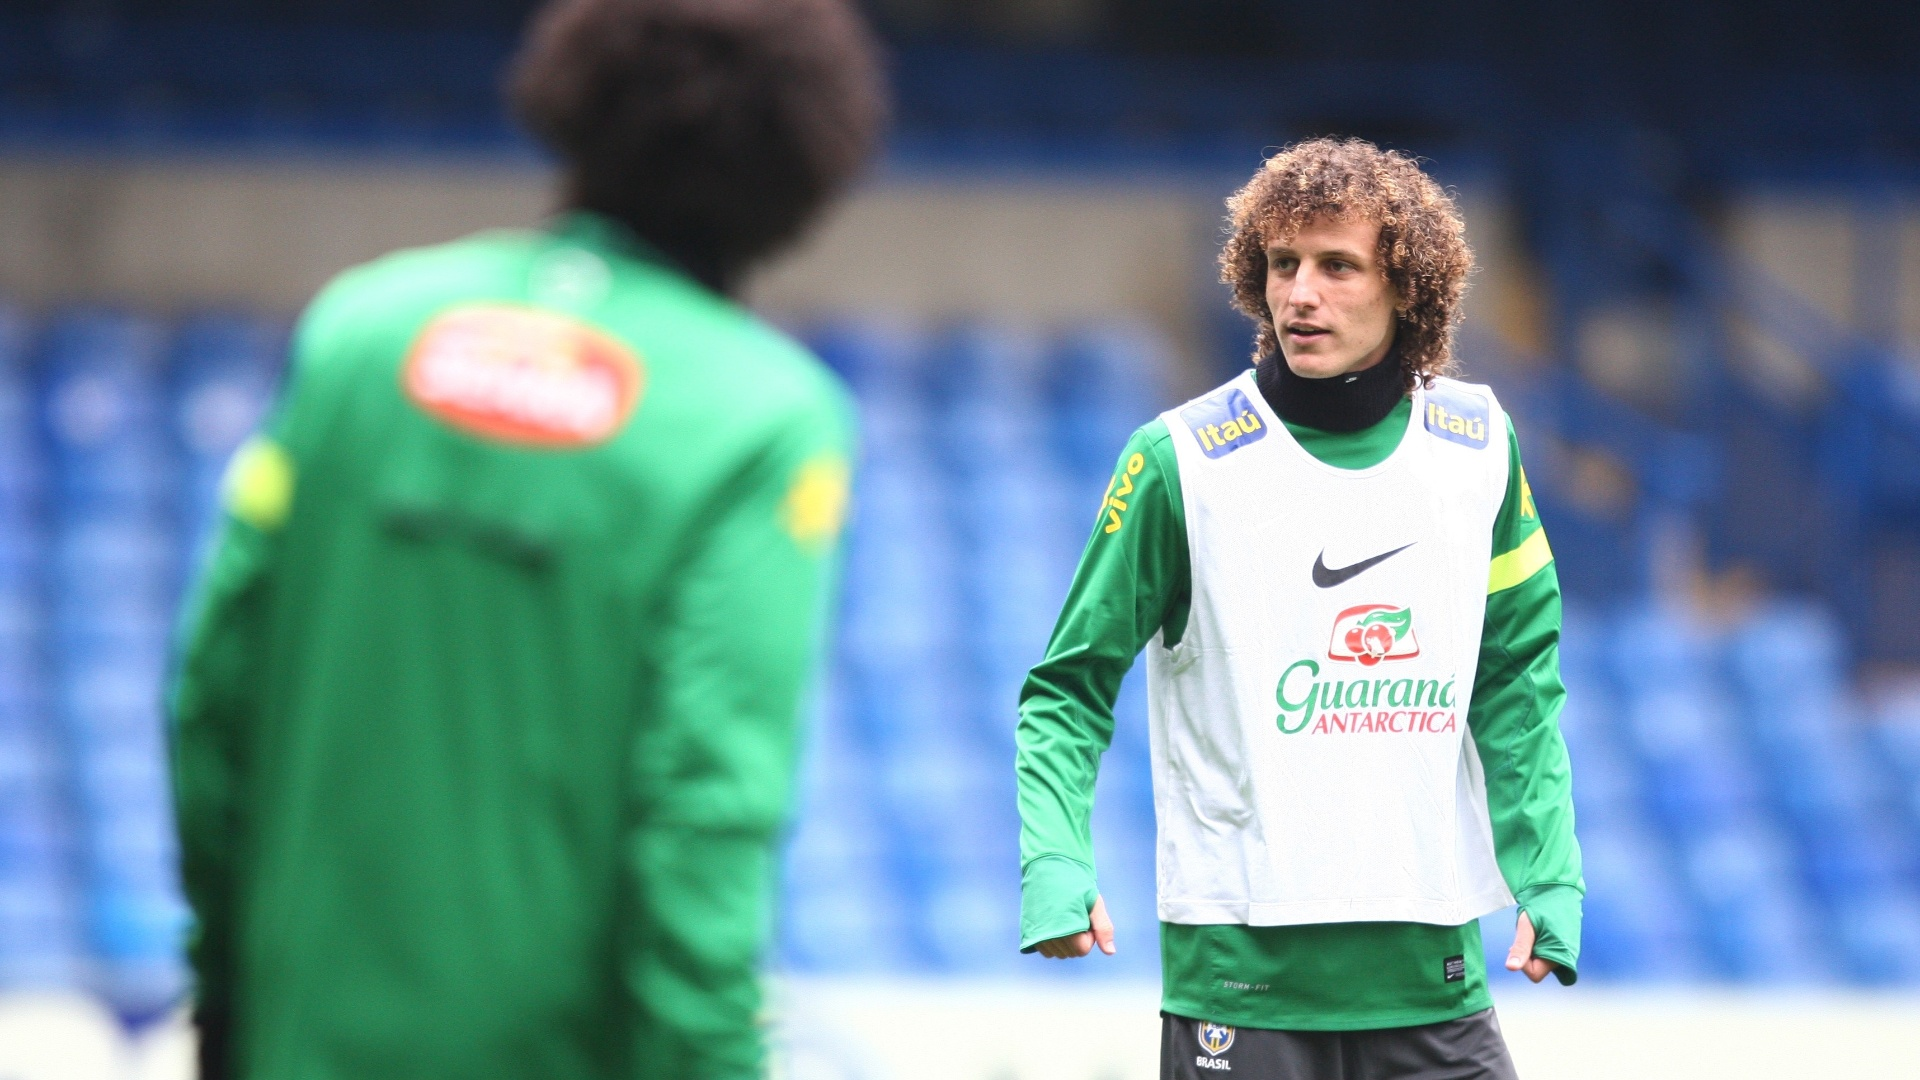 24.mar.2013 - Zagueiro David Luiz, do Chelsea, participa do treino da seleo no estdio da sua prpria equipe, em Londres